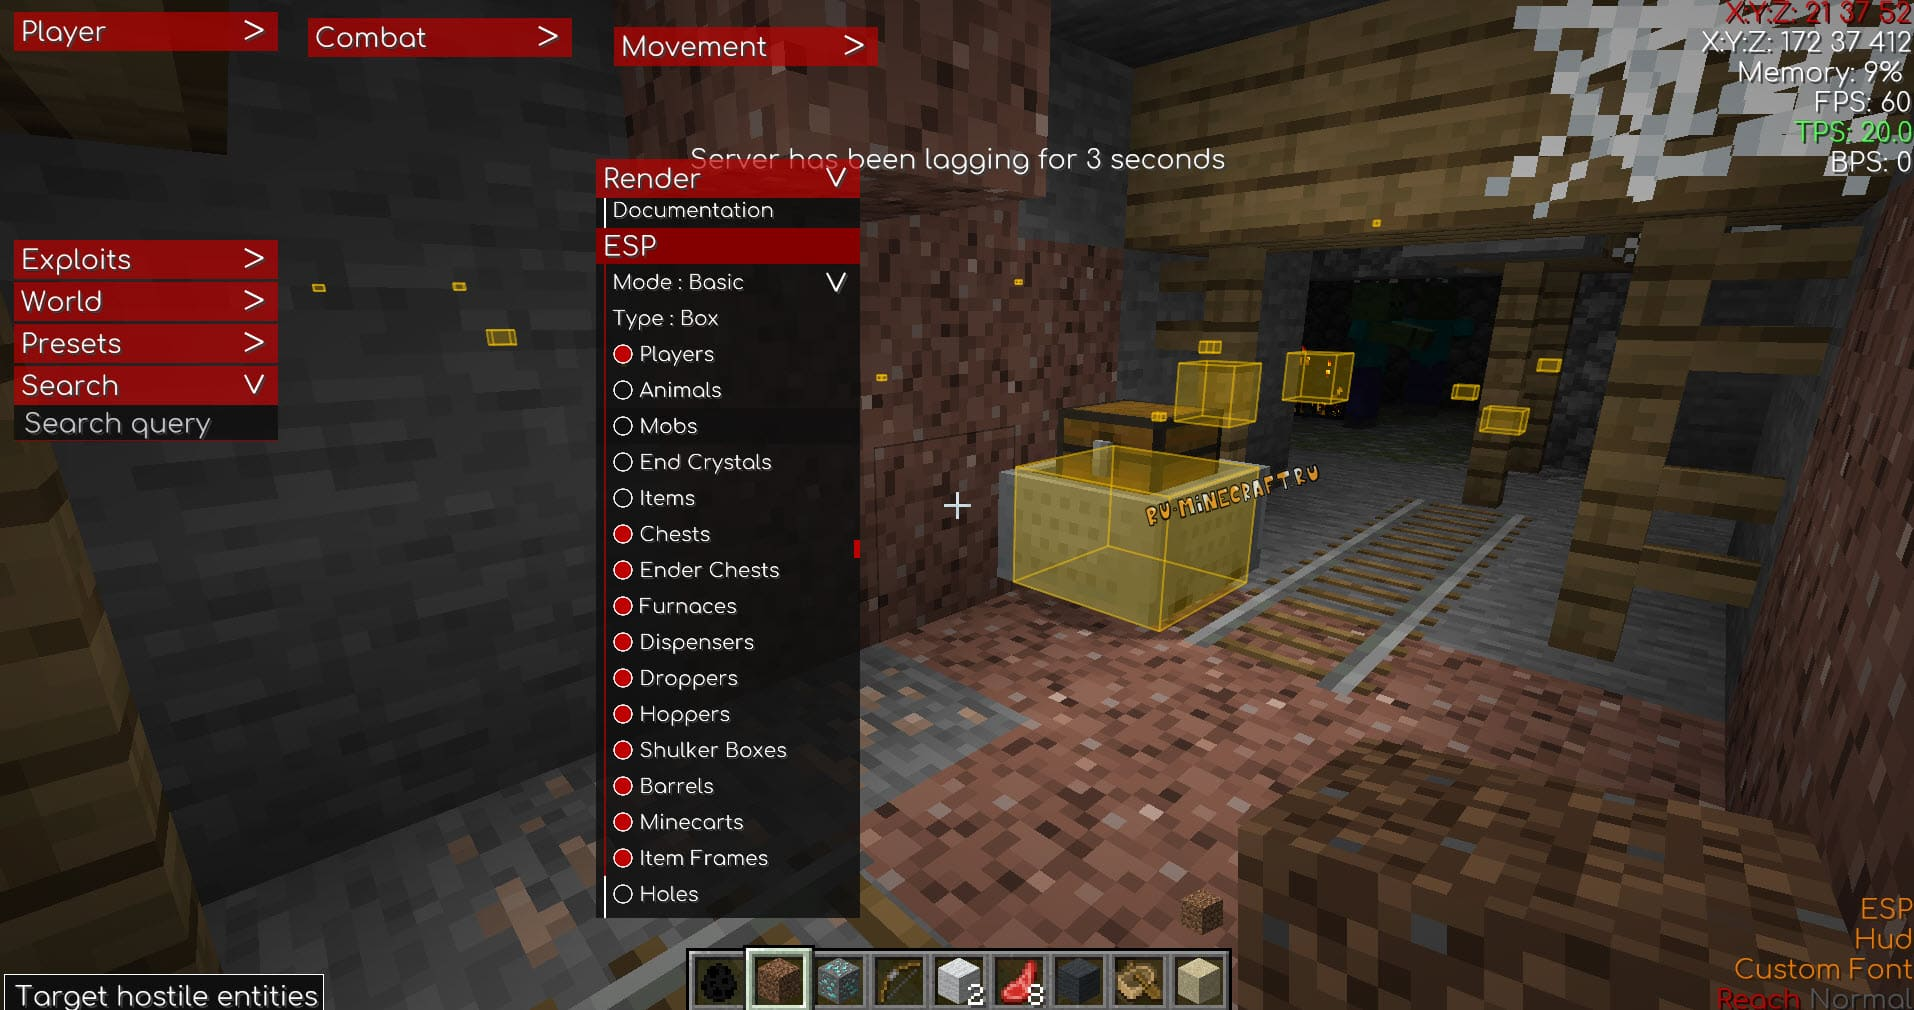 Inertia Cheat Client 1.16.5 1.15.2 1.14.4 1.12.2 - The cheat contains many basic features, such as the ability to shine through walls, highlight mobs and players, blocks, automatically put blocks, break and destroy the world, spam the chat, try to fly and run faster, automatically aim with a bow, automatically attack, and many other different cheat and useful functions, all of them are described below. - Free Cheats for Games